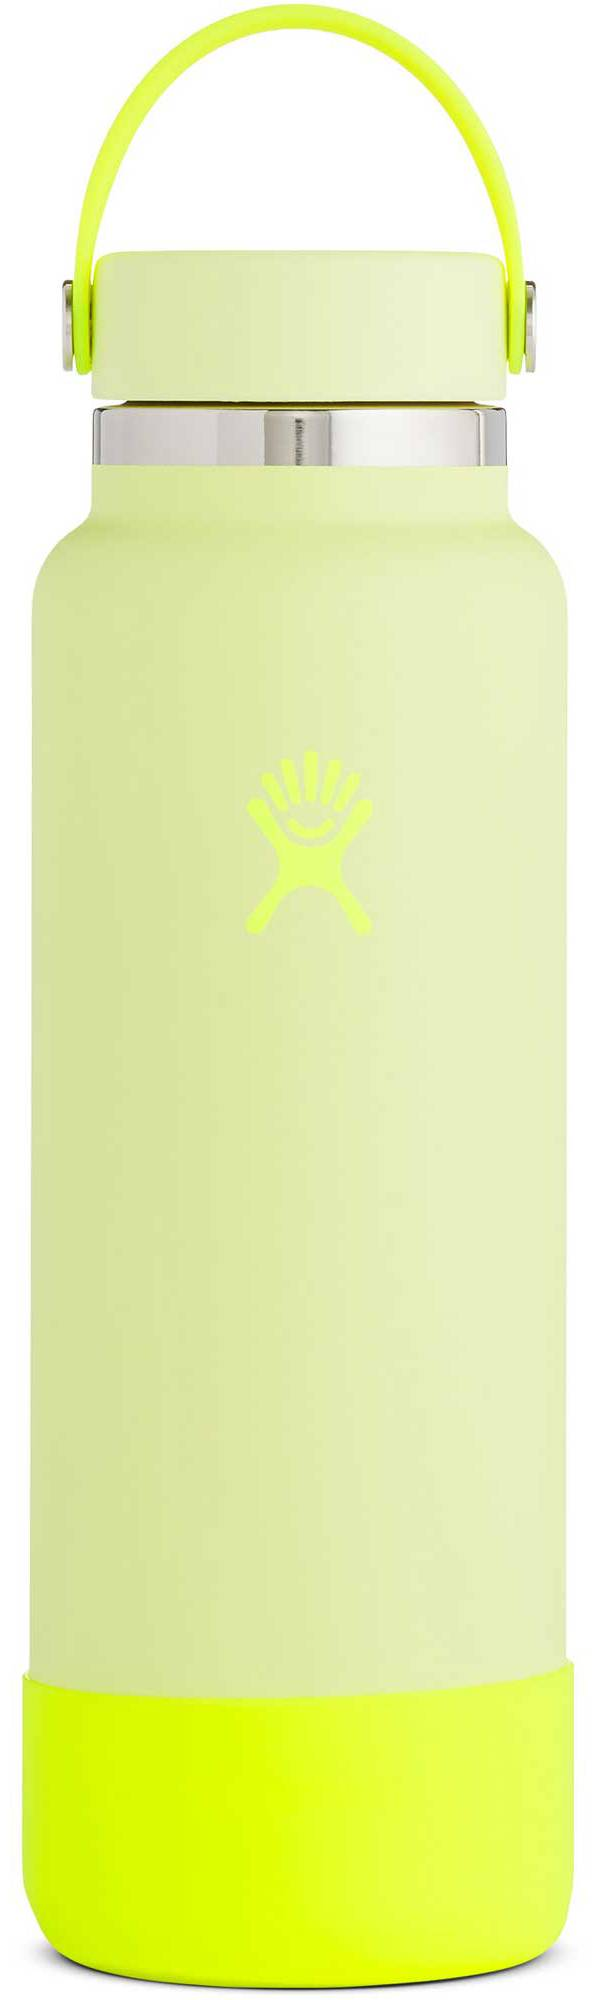 Hydro Flask 40 oz. Prism Pop Wide Mouth Bottle product image